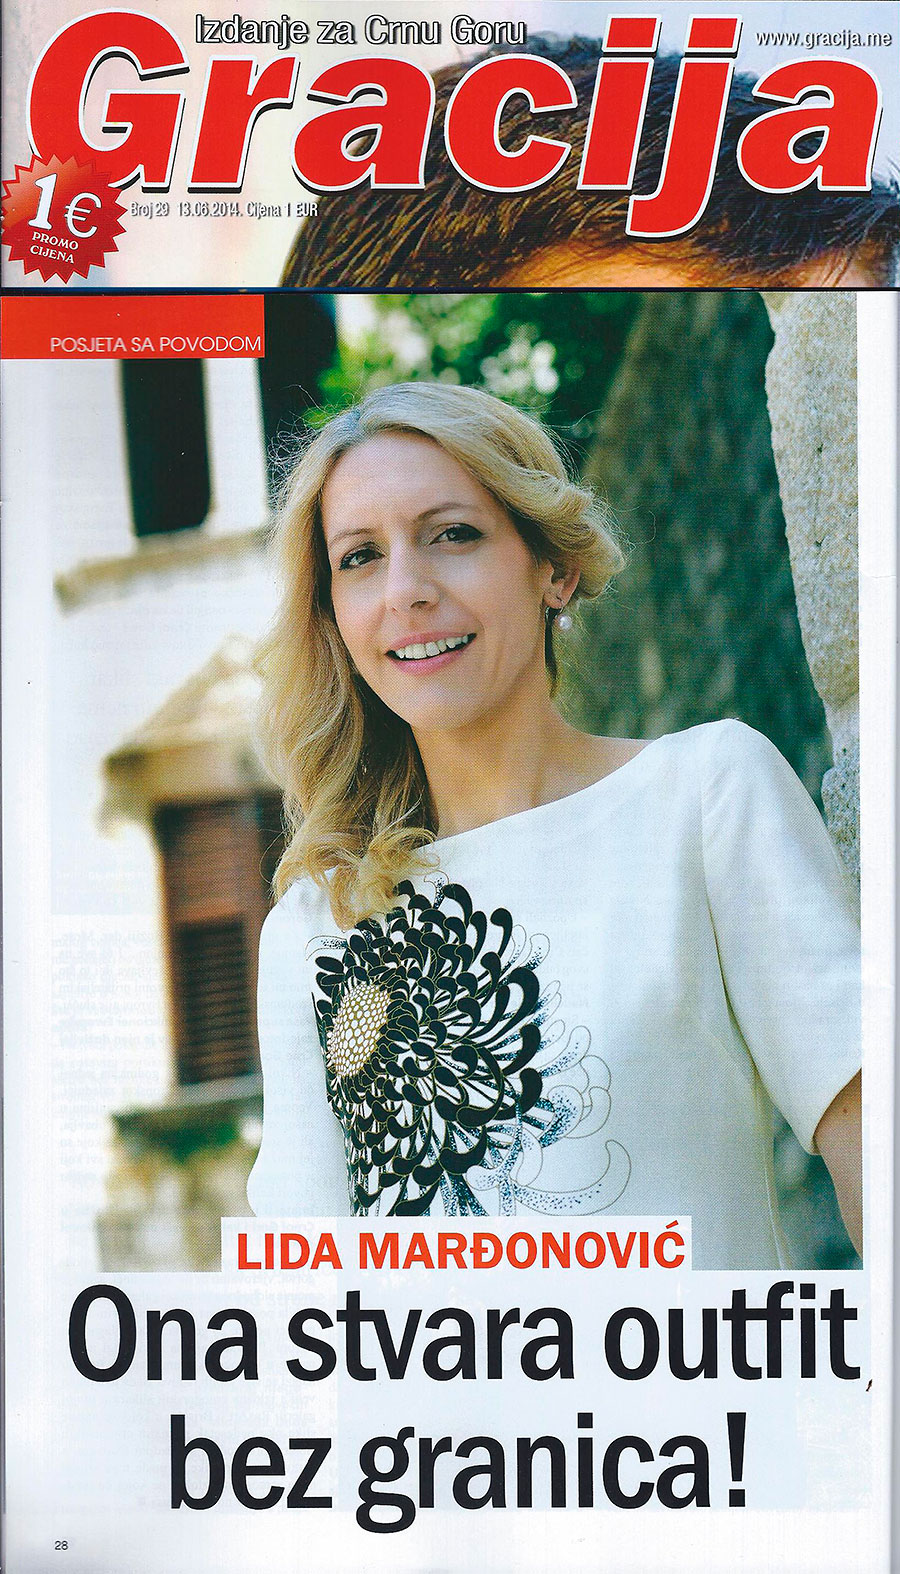 2014 | Media write about Lida Marđonović, a four children mother starting the fashion business